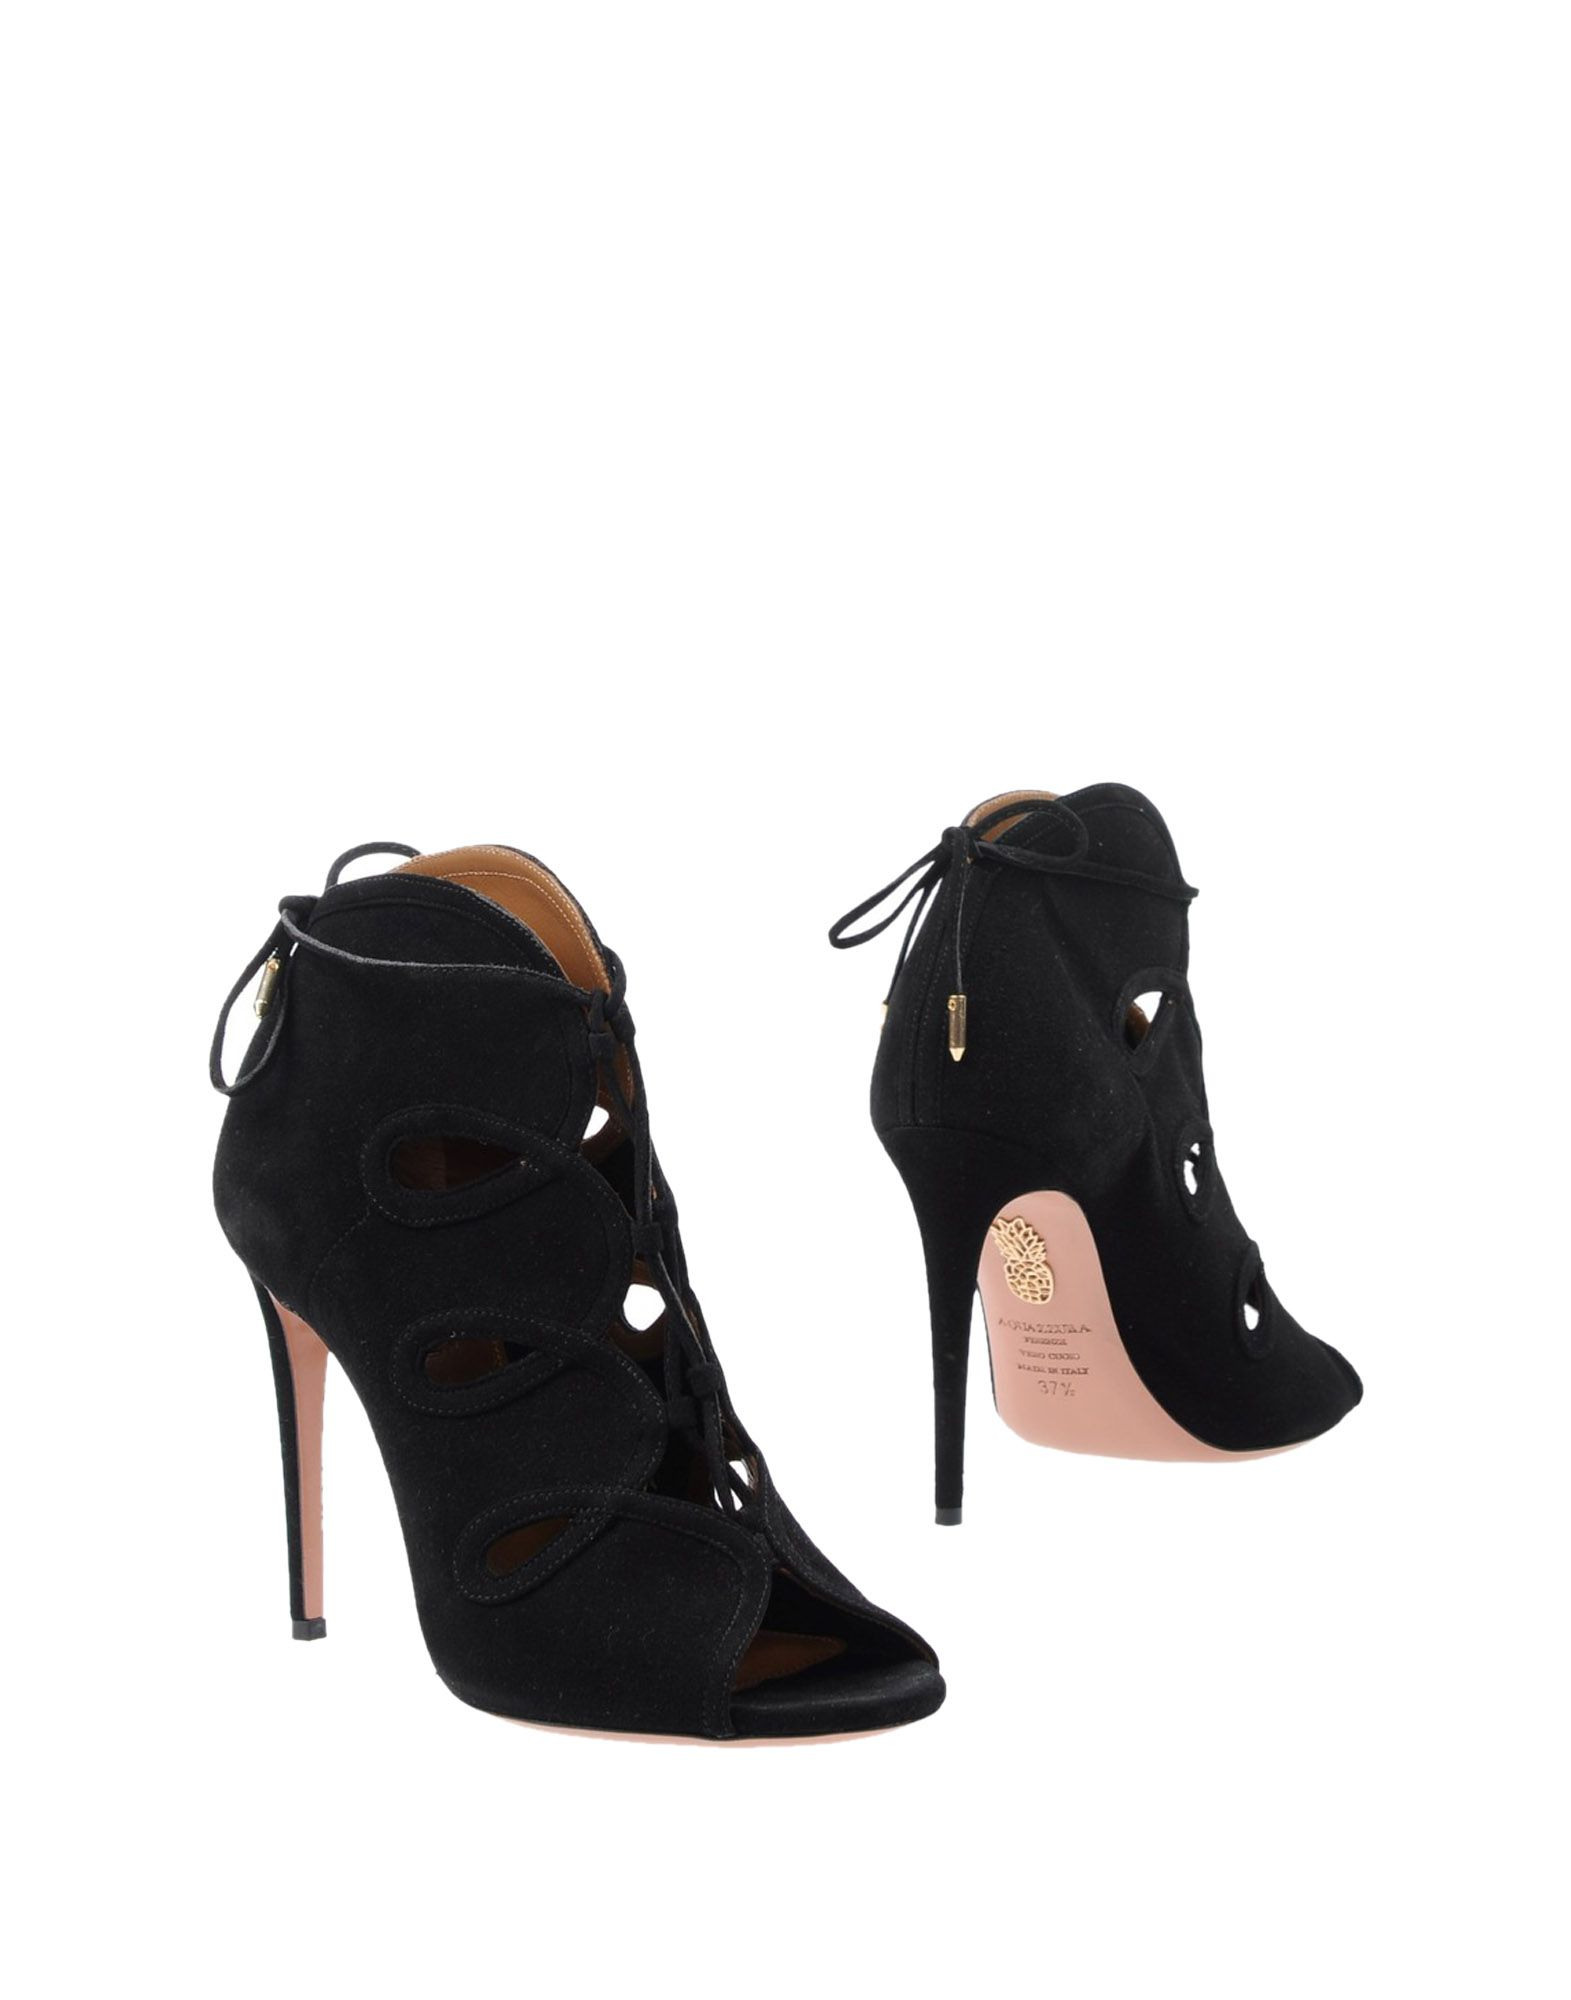 Bottine Aquazzura Femme - Bottines Aquazzura sur